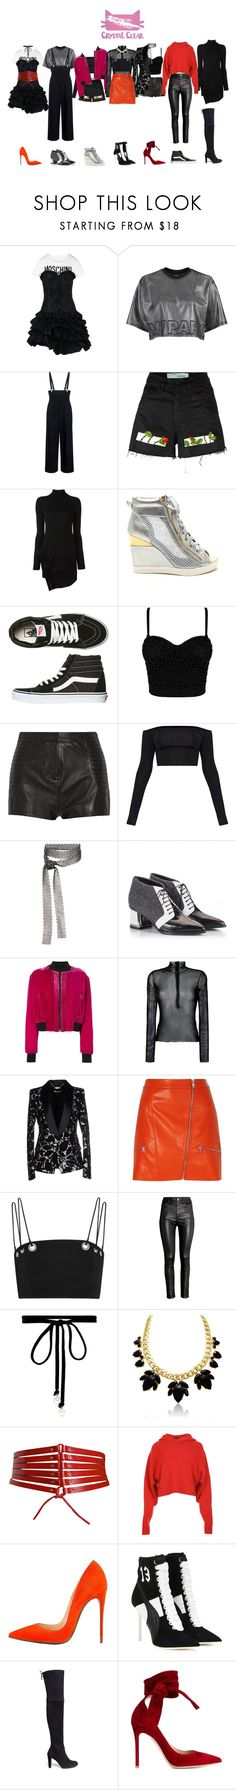 """""""Hobgoblin CLC"""" by souljuice ❤ liked on Polyvore featuring Moschino, Topshop, TIBI, Off-White, Dsquared2, Vans, Pierre Balmain, Fallon, Alberto Guardiani and County Of Milan"""